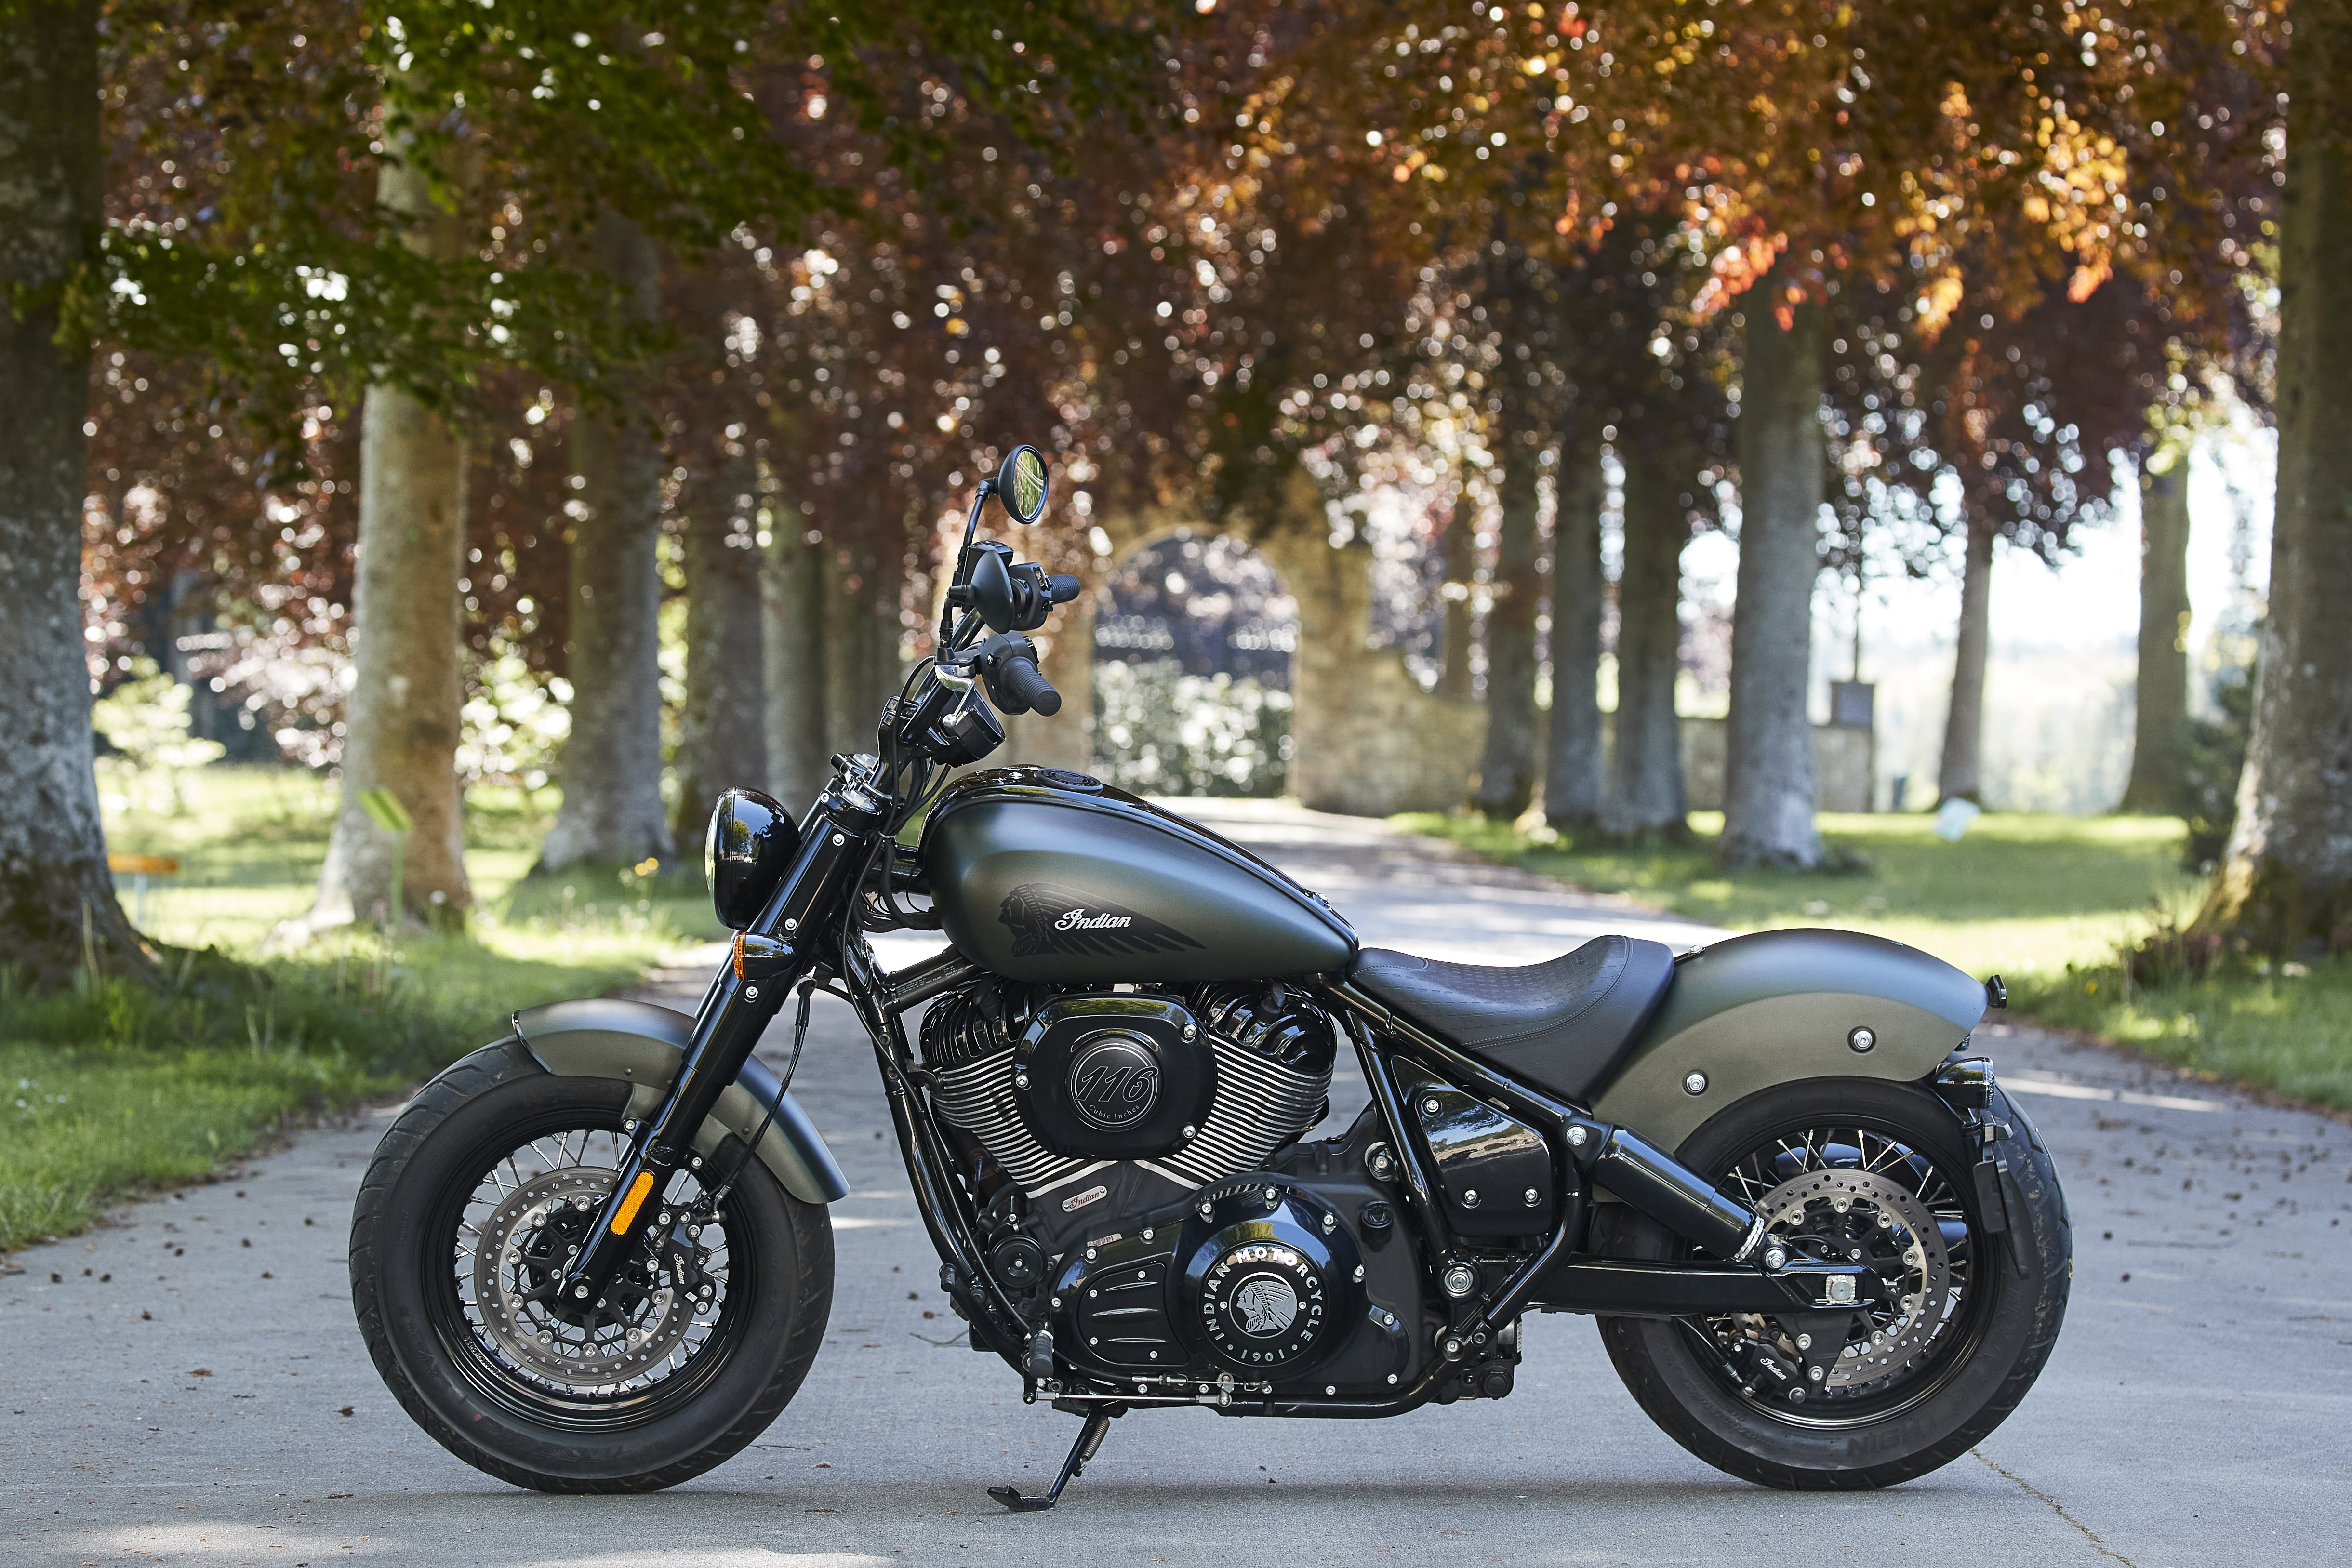 DUOTEST: Indian Chief 2022 Line-up